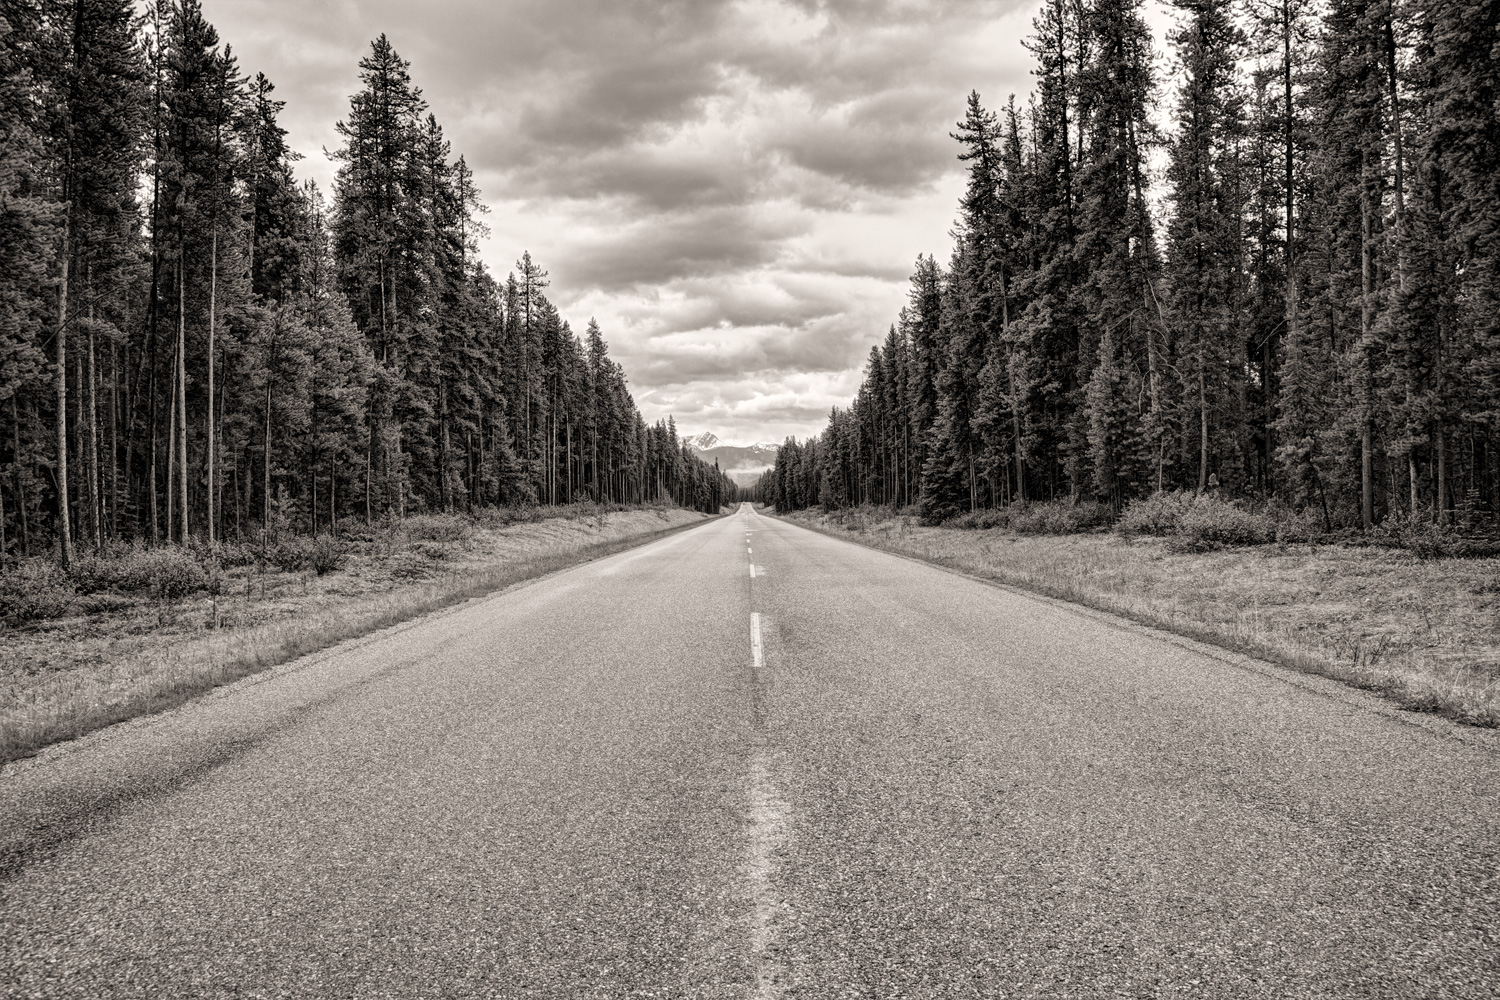 Quiet Stretch in the Canadian Rockies - Shot with a 18 Megapixel Camera and 24-105mm Lens